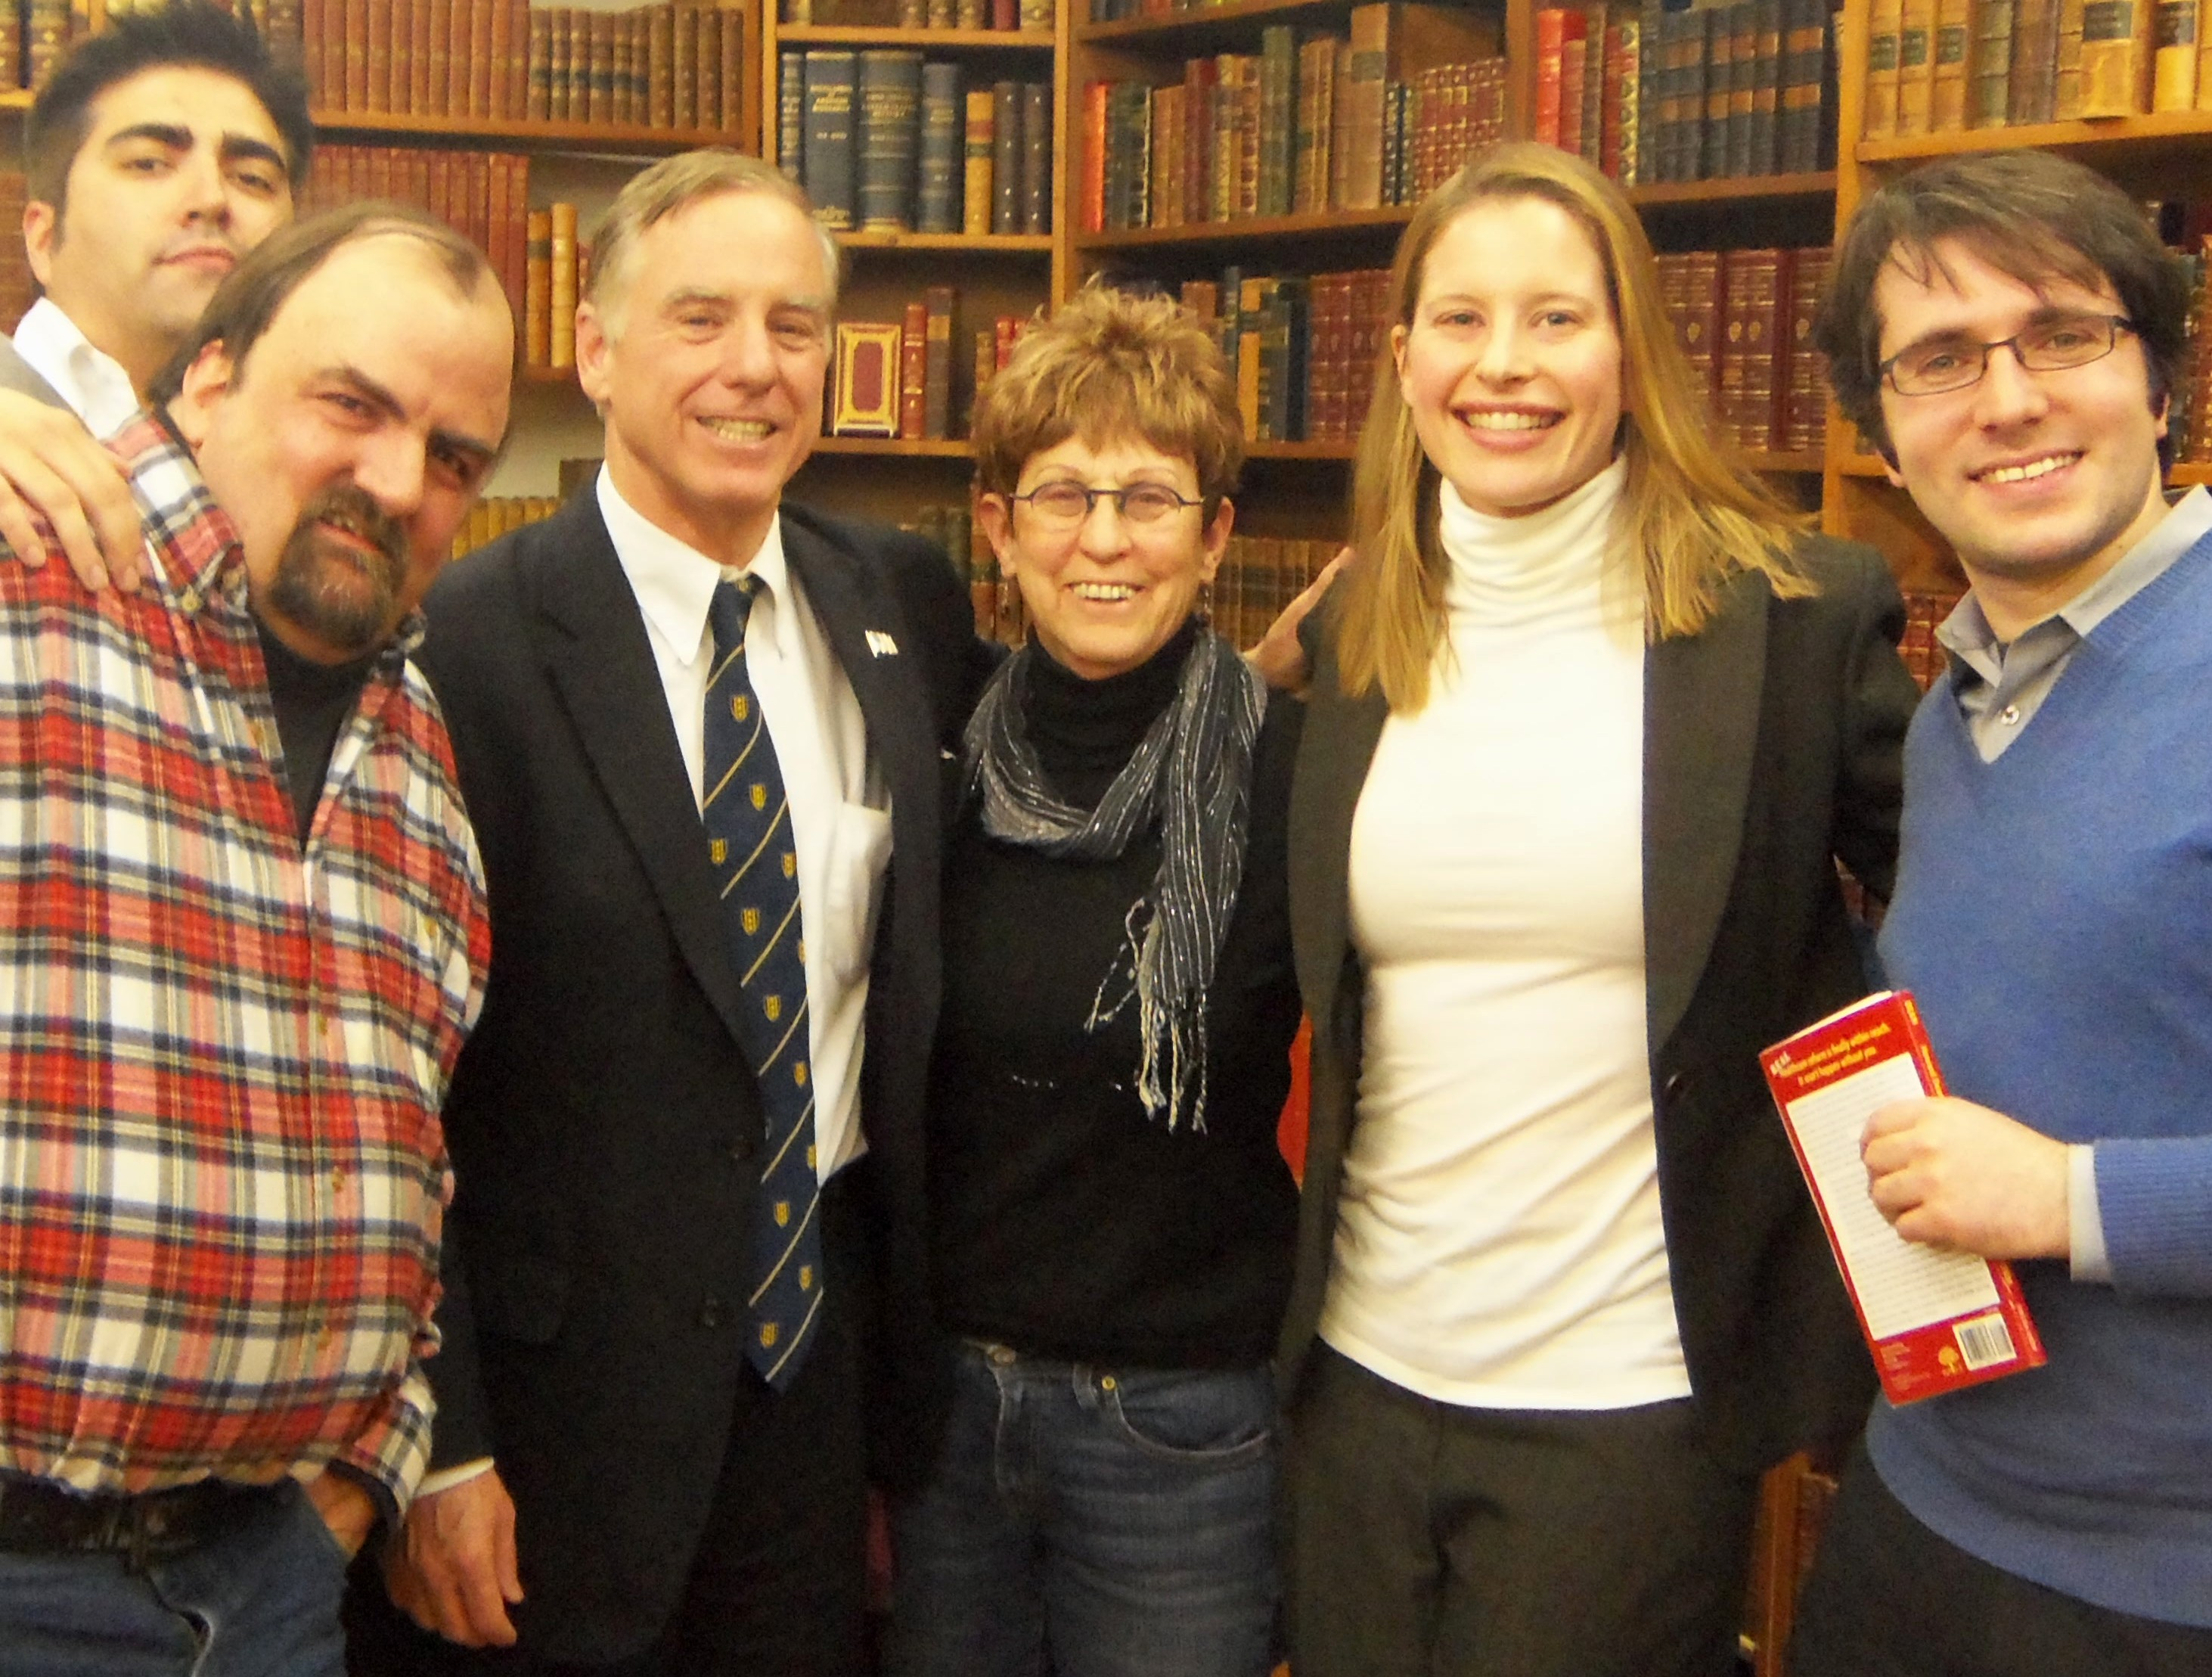 Gov. Howard Dean with DFNYC members at the Strand Bookstore